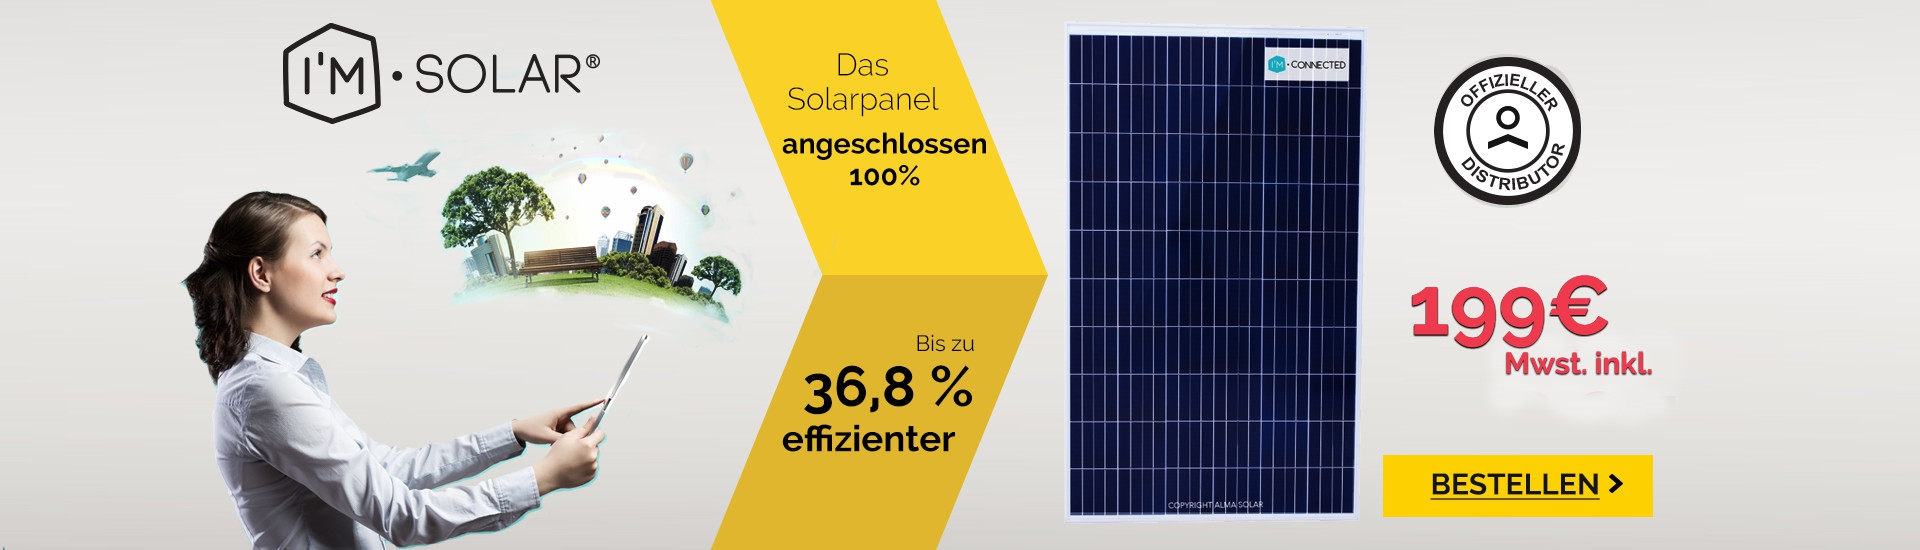 Kaufen I'M CONNECTED Solarmodule